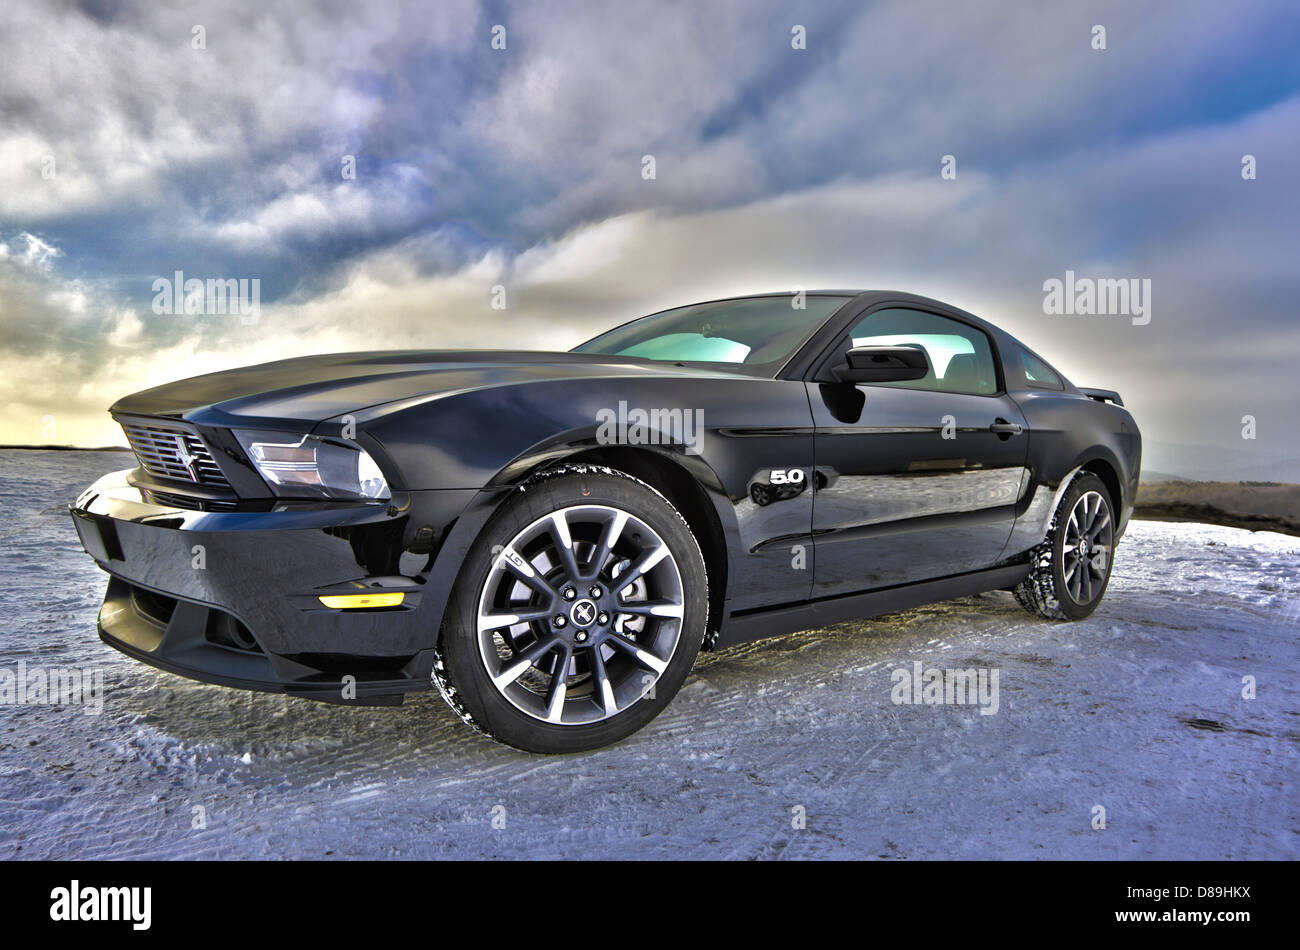 Ford Mustang Auto Auto Muskel-Auto Sportcoupé Stockbild